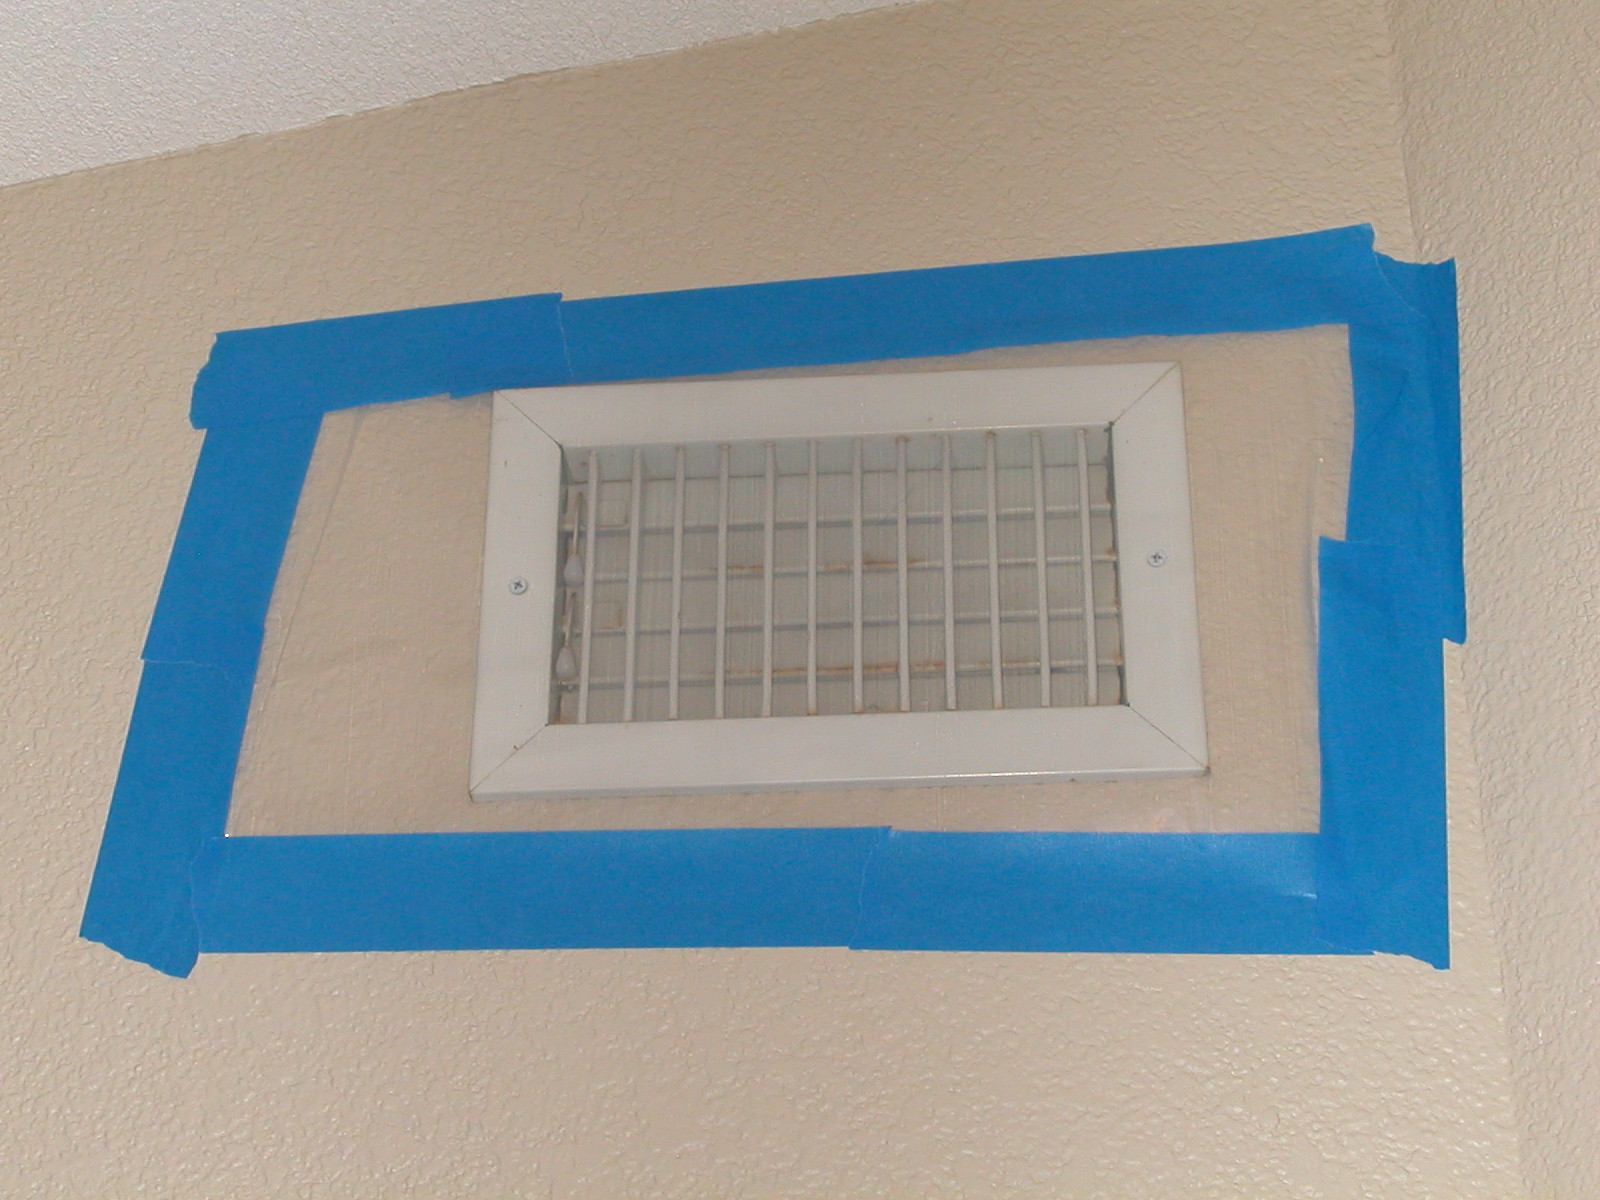 Tape off all air vents